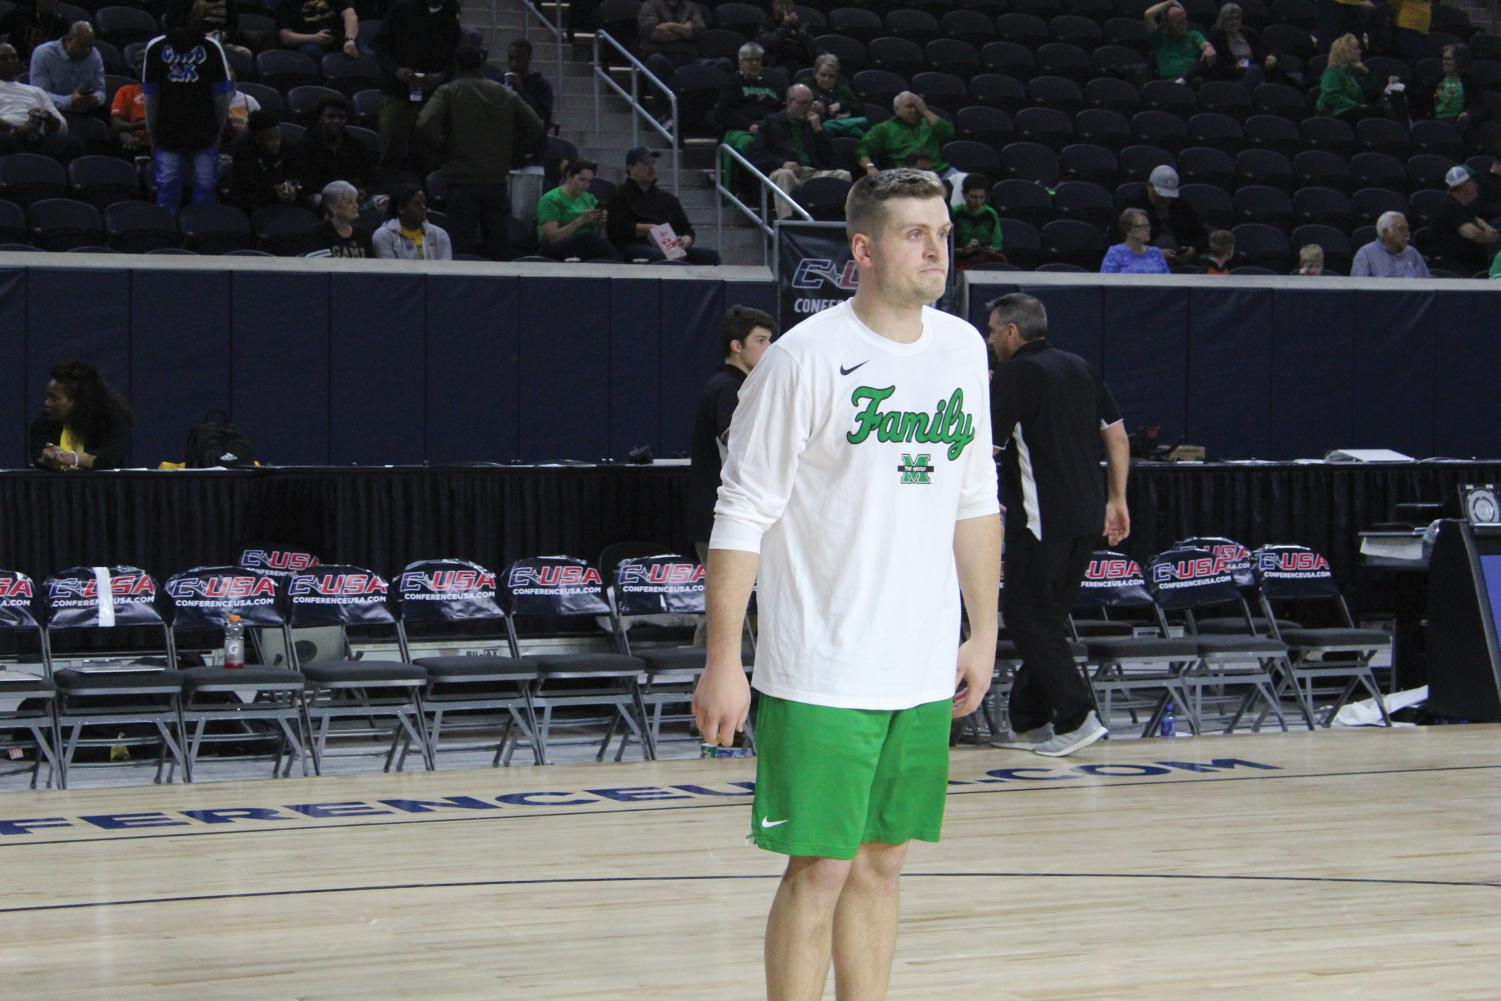 Marshall men's basketball co-head manager Danny Feck prepares to rebound a shot from one of the Herd's players during warmups prior to a Conference USA Tournament game against Southern Miss on March 14.